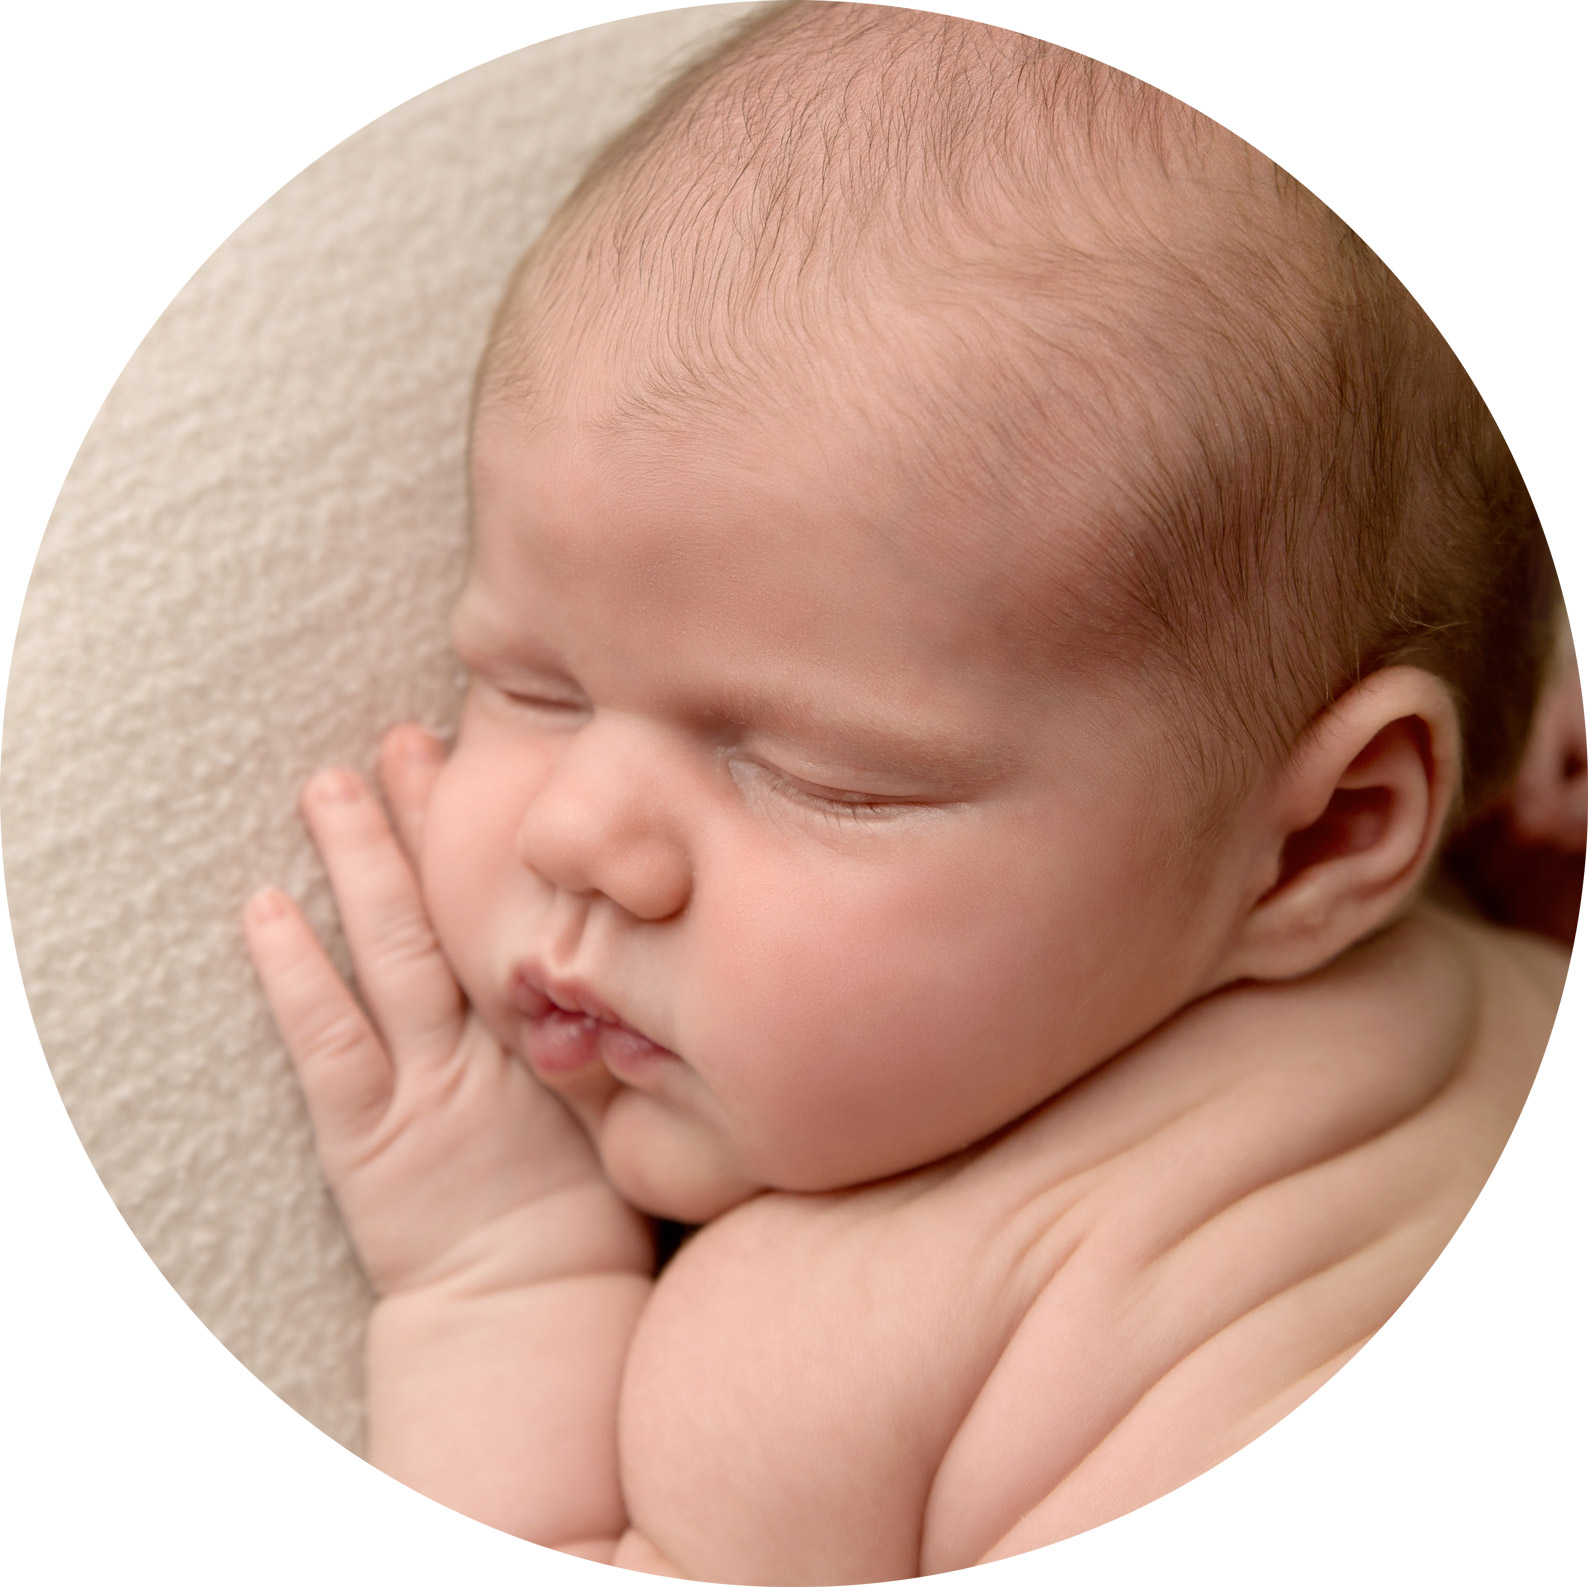 newborn-photography-hemel-hempstead-hertfordshire-studio-asleep-cute.jpg